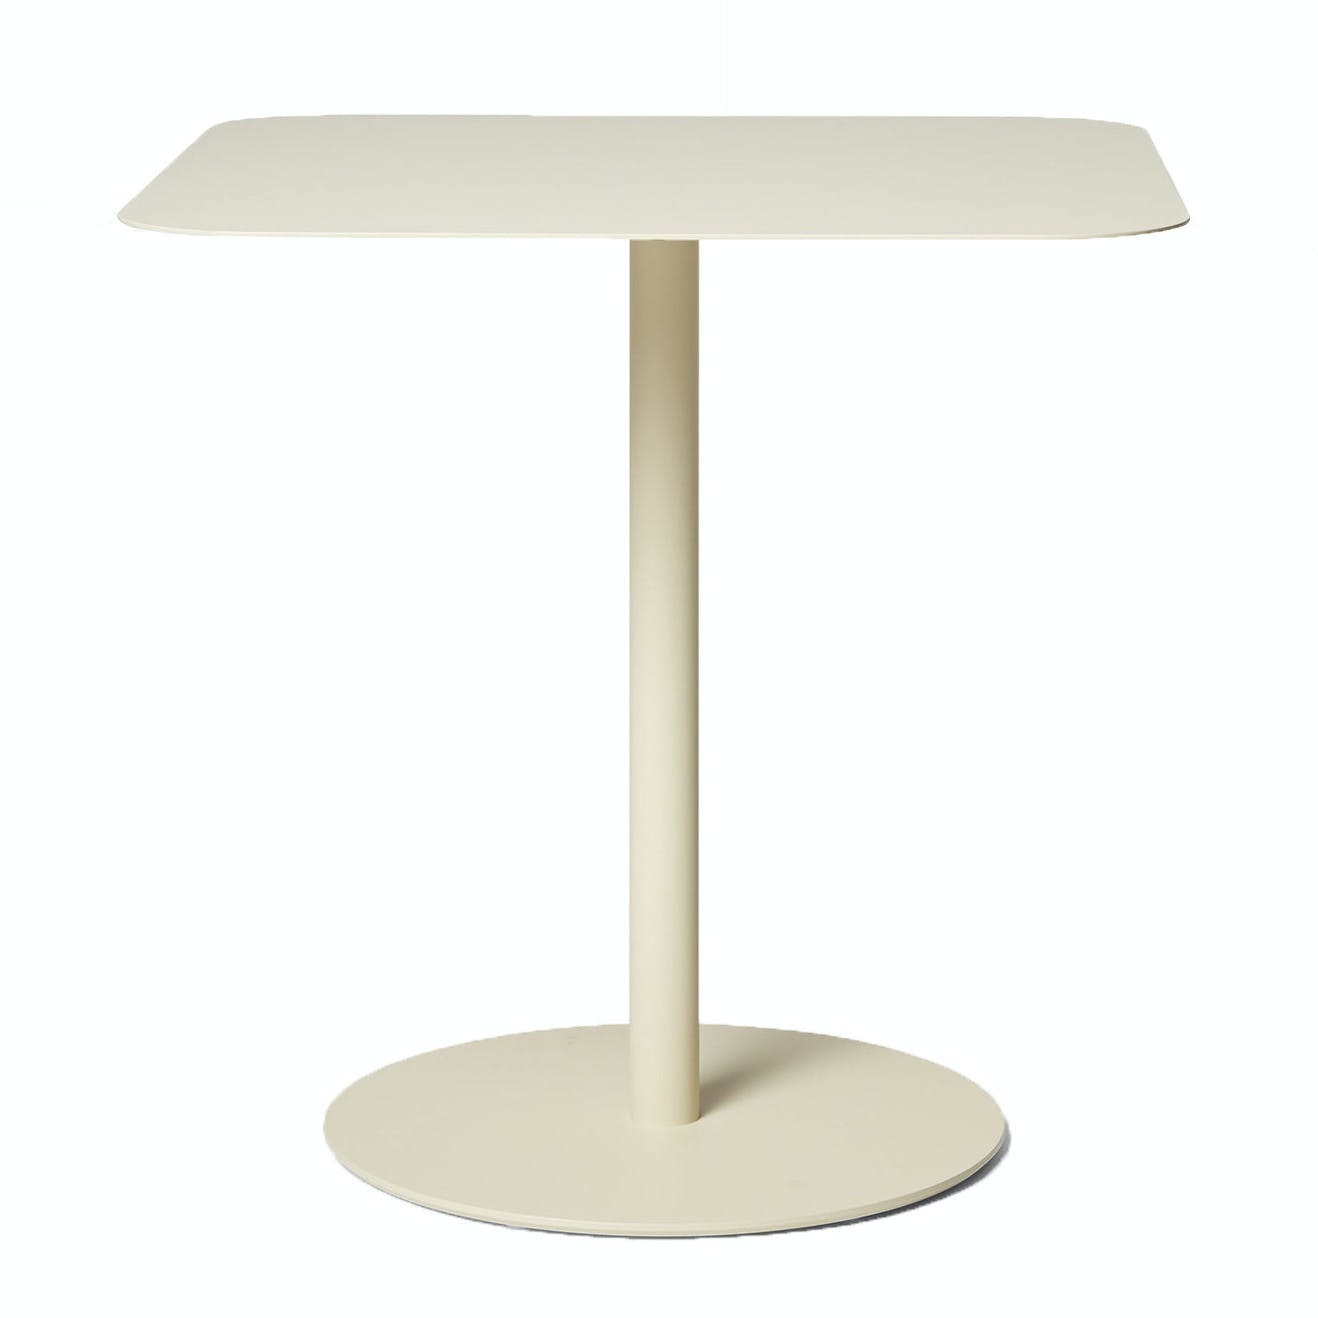 Massproductions Odette Table White Front Haute Living Copy